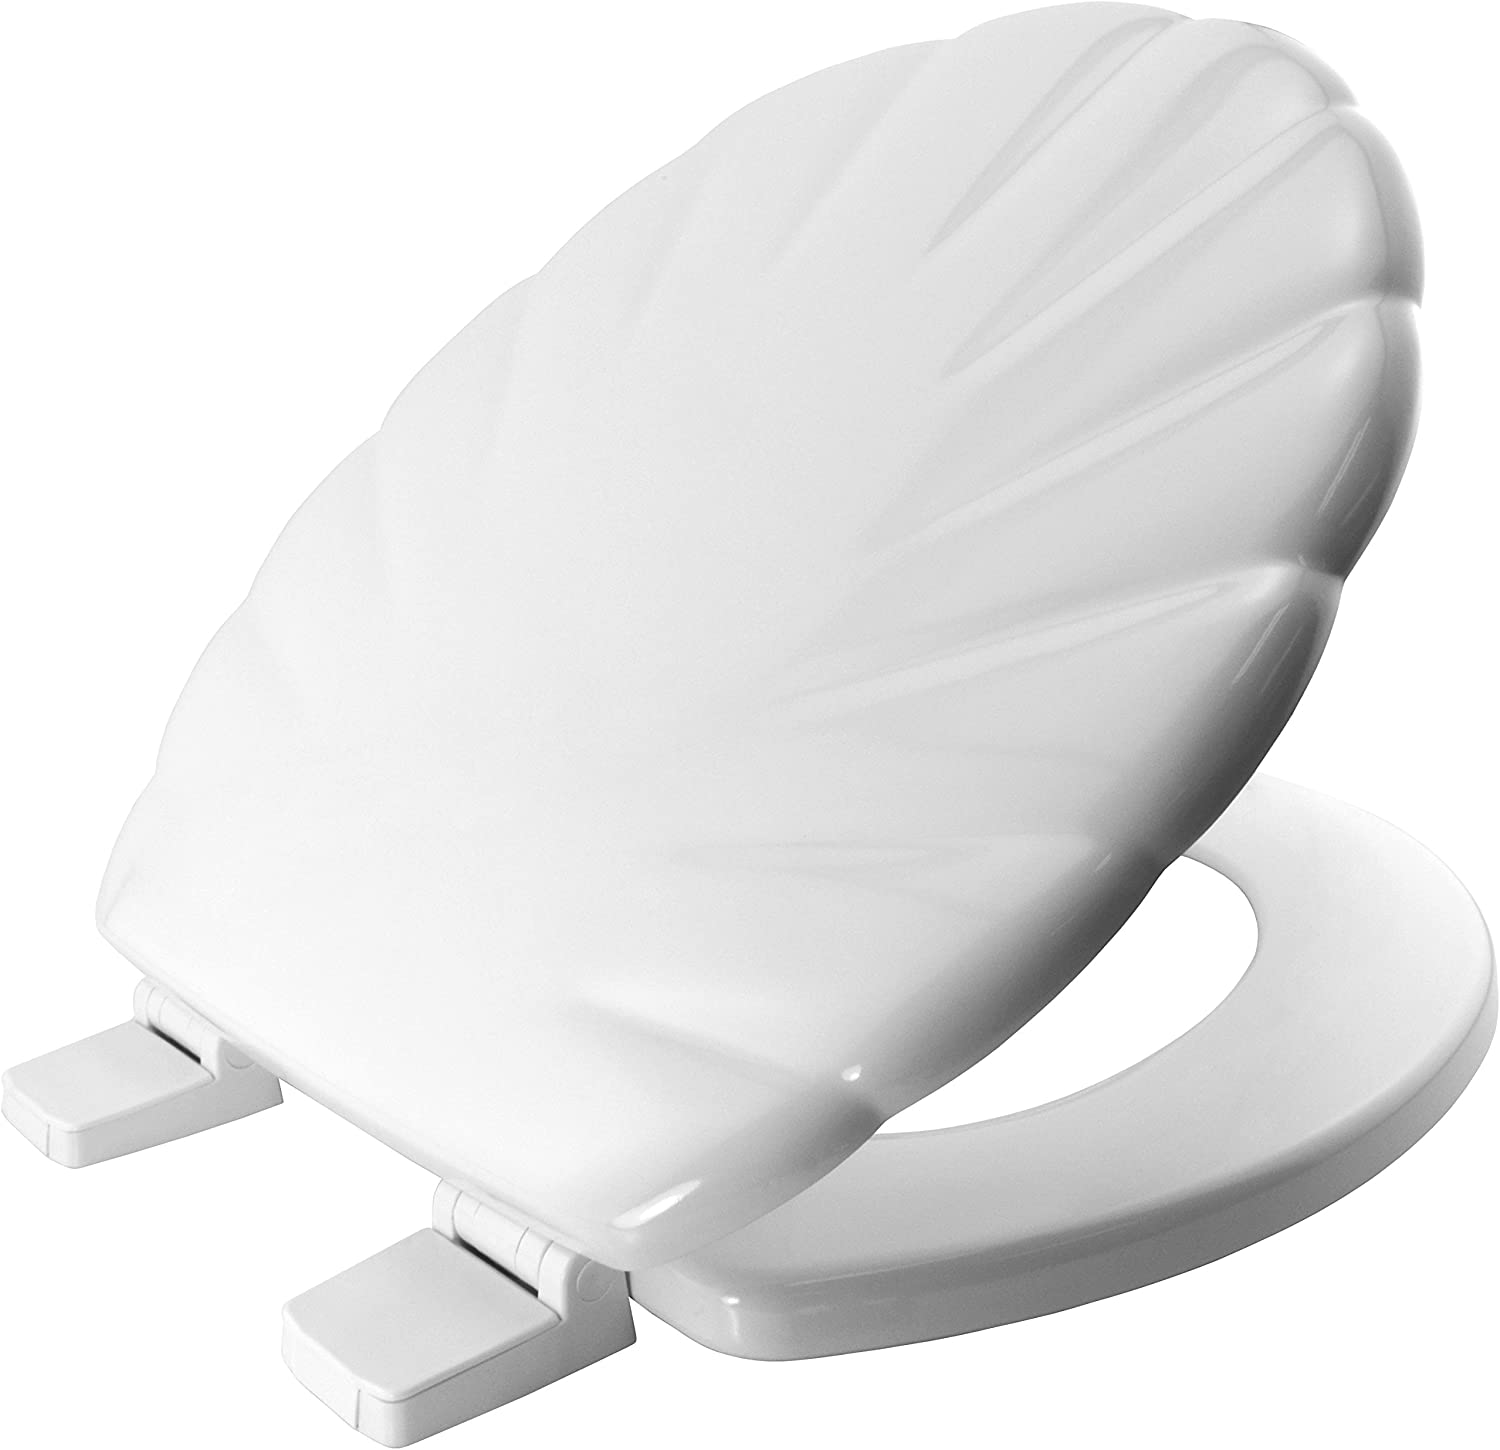 Bemis Shell STAY TIGHT Toilet Seat - White